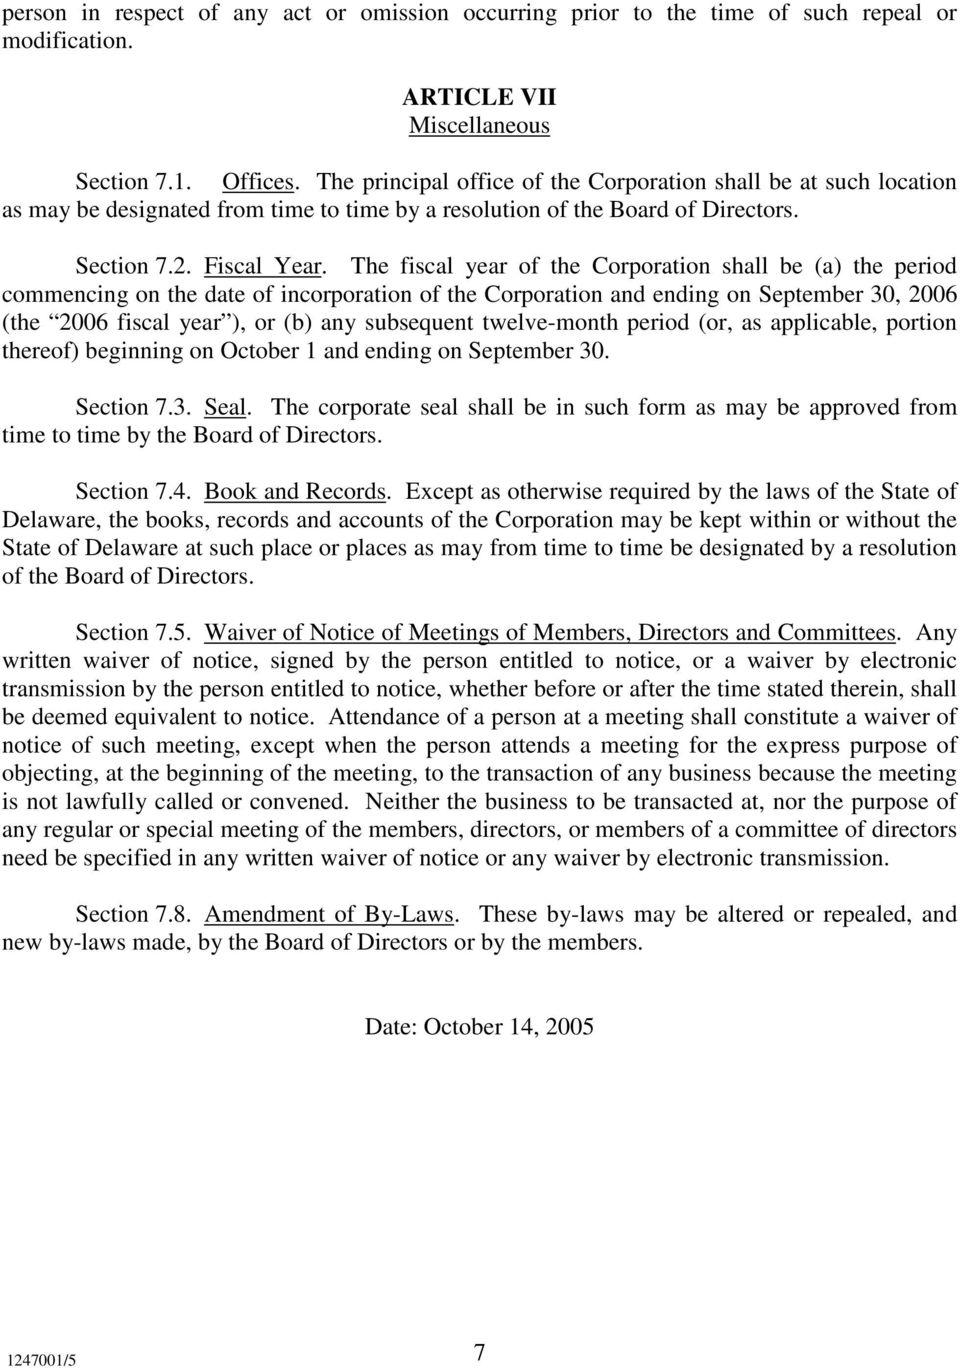 The fiscal year of the Corporation shall be (a) the period commencing on the date of incorporation of the Corporation and ending on September 30, 2006 (the 2006 fiscal year ), or (b) any subsequent